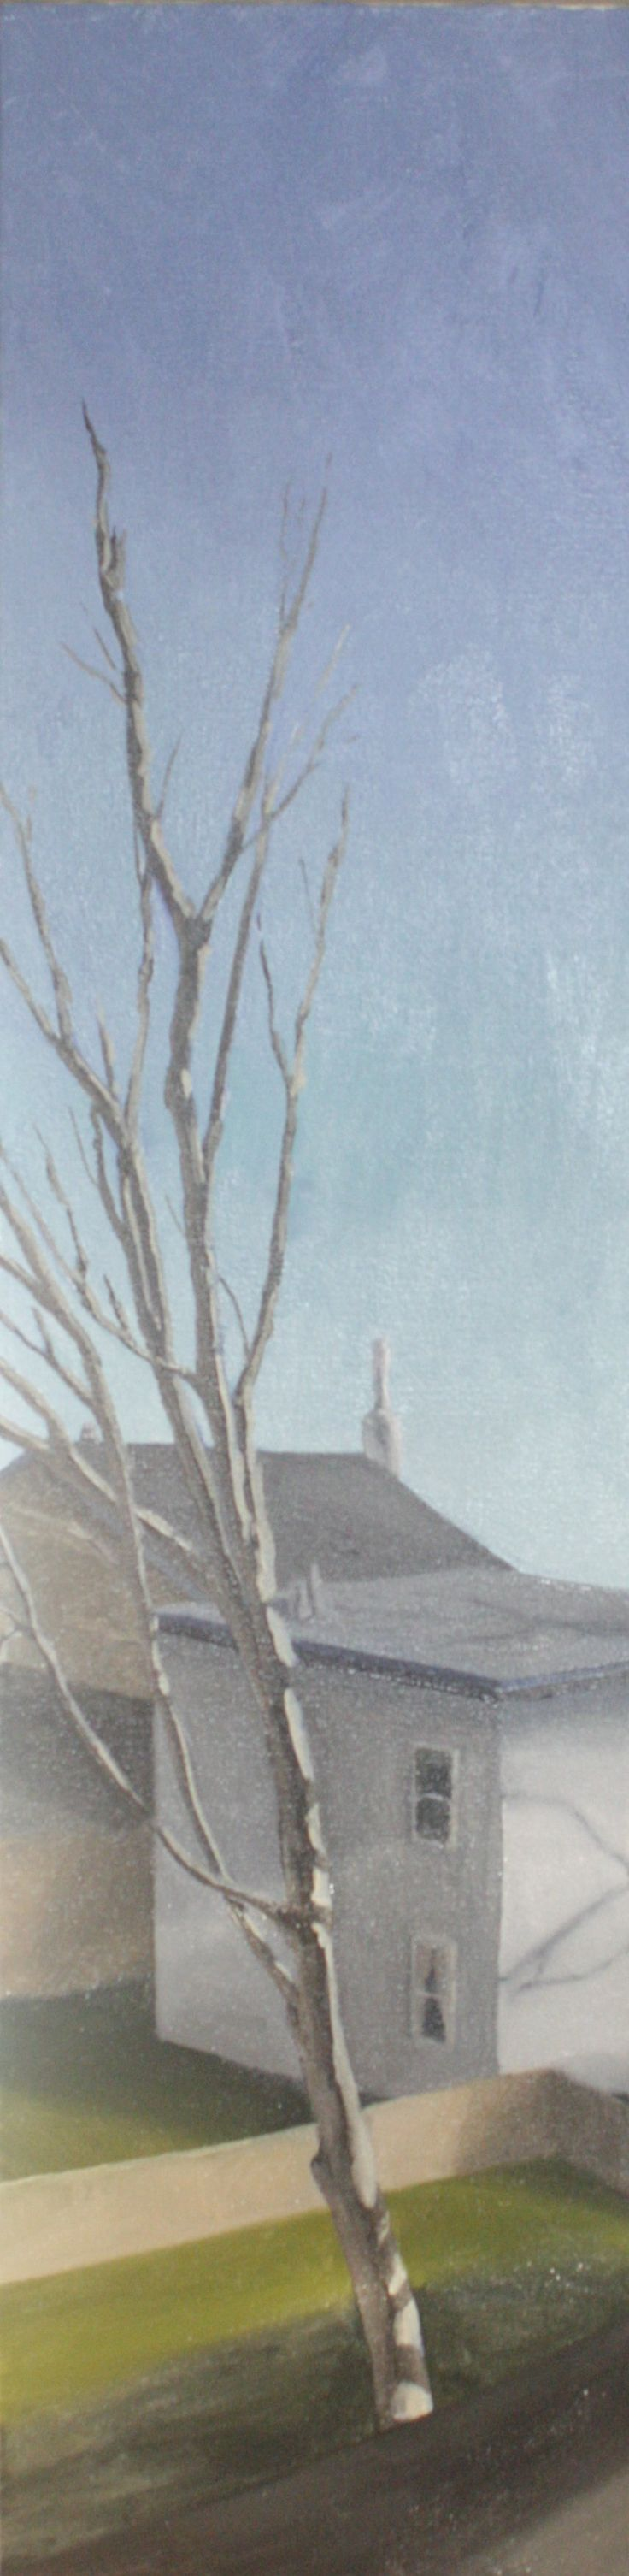 Alex L. King Painting - 4'x1' Oil on Canvas #painting #oil #house #tree #sky #grass #green #landscape #houses